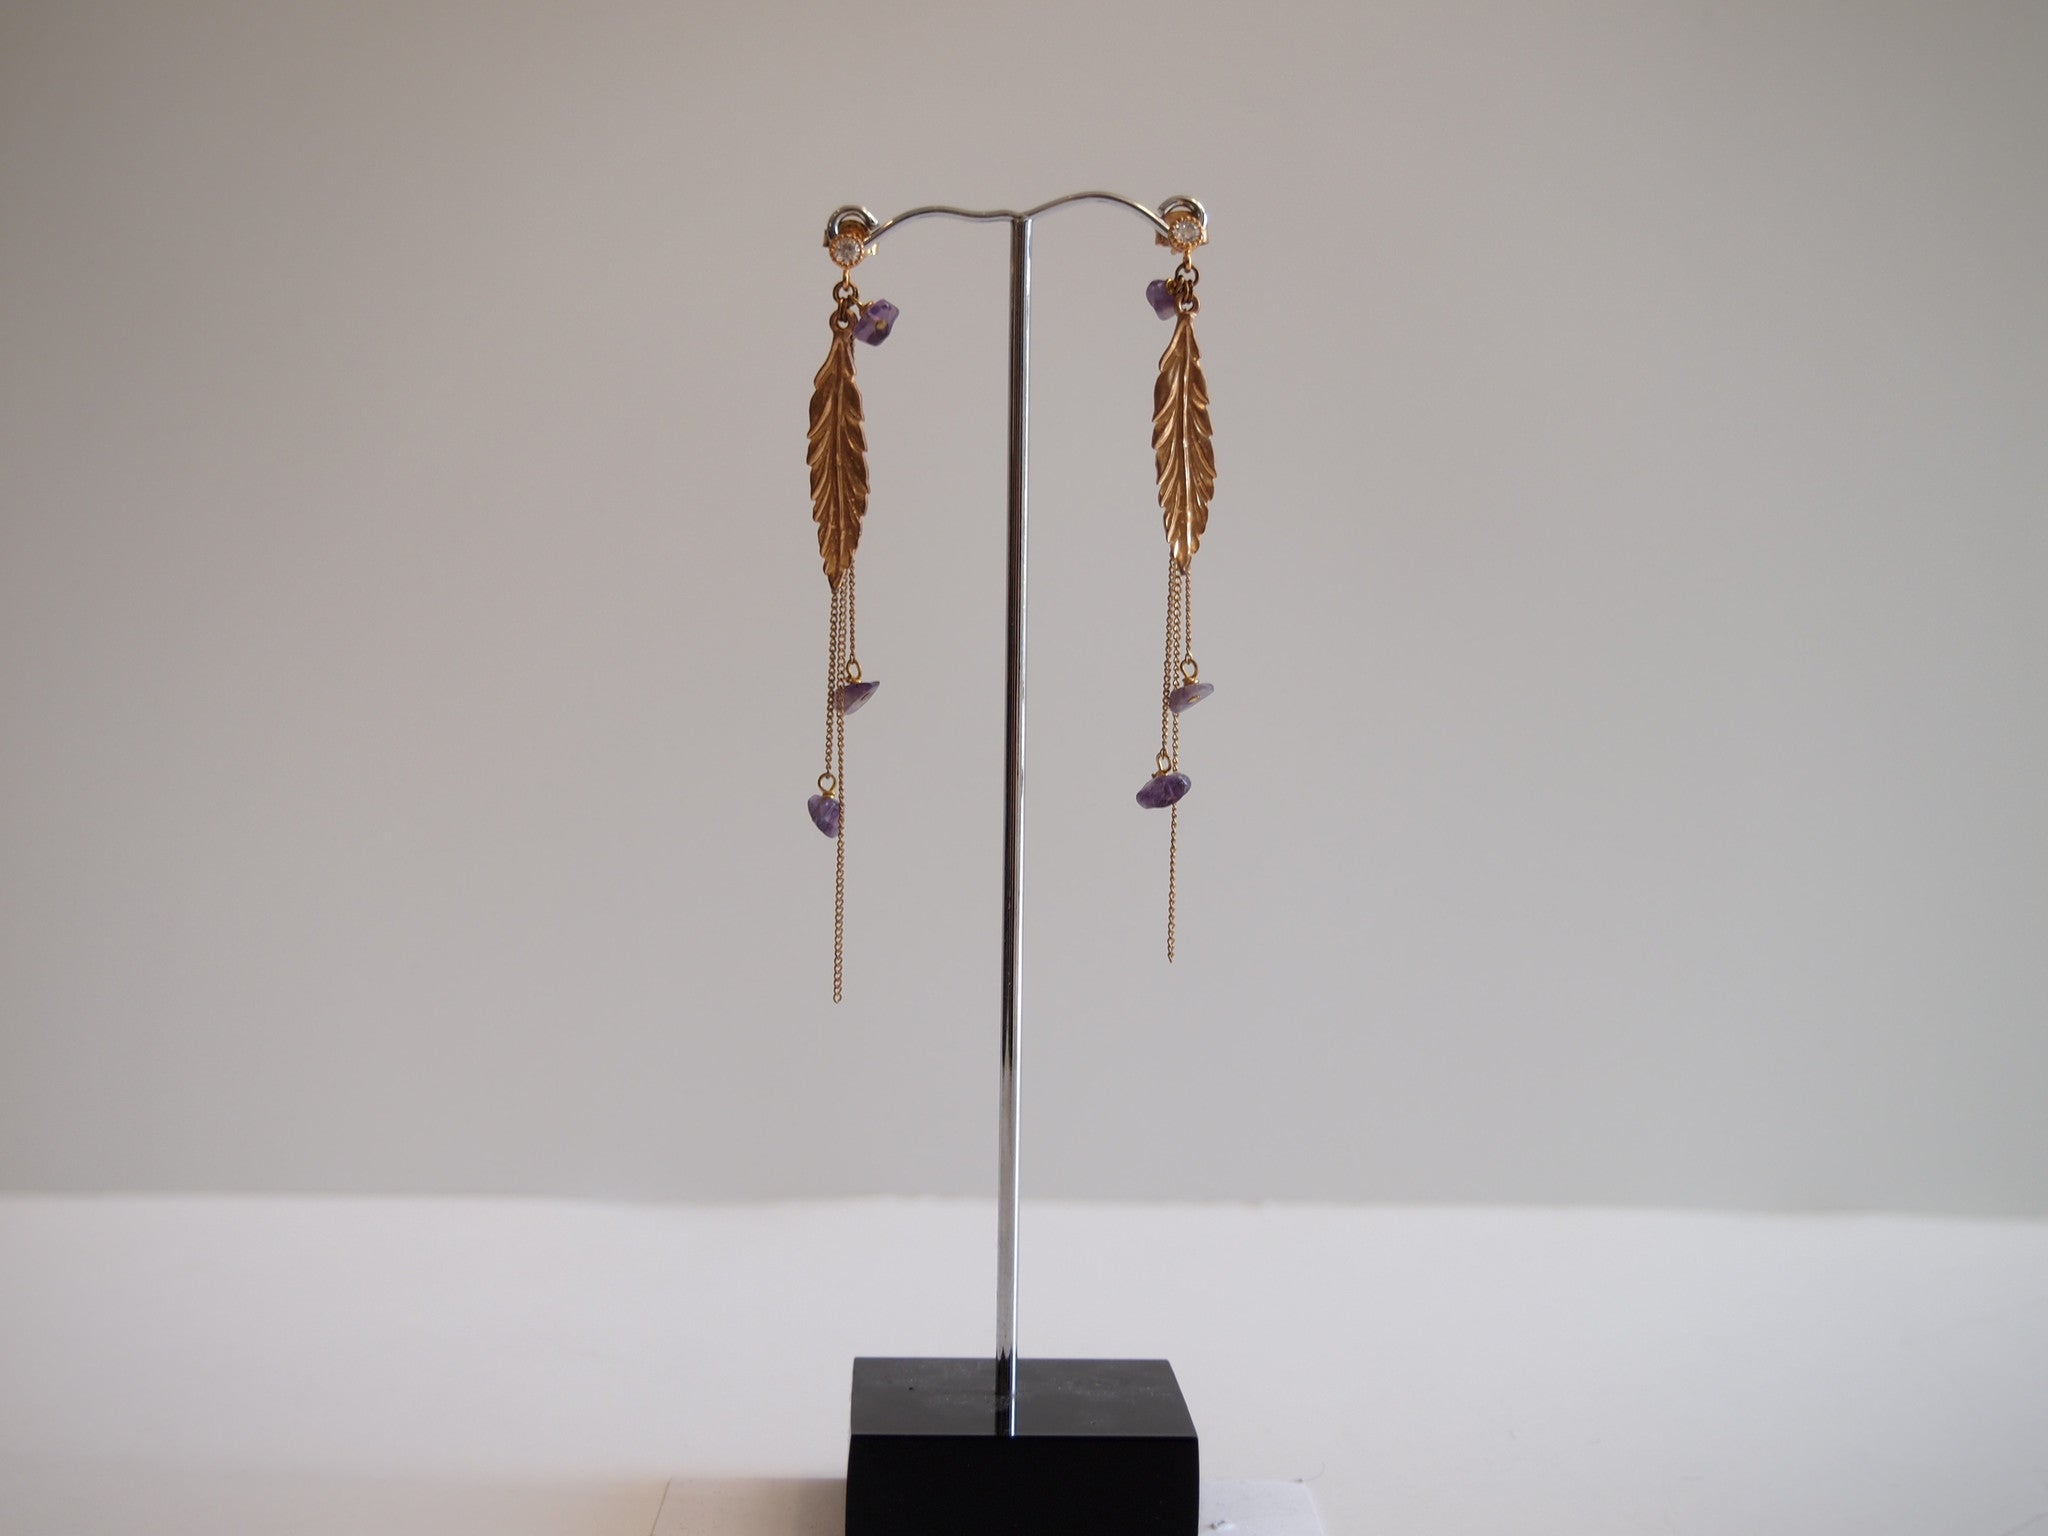 Handmade earrings with purple amethyst with gold-plated leaf design